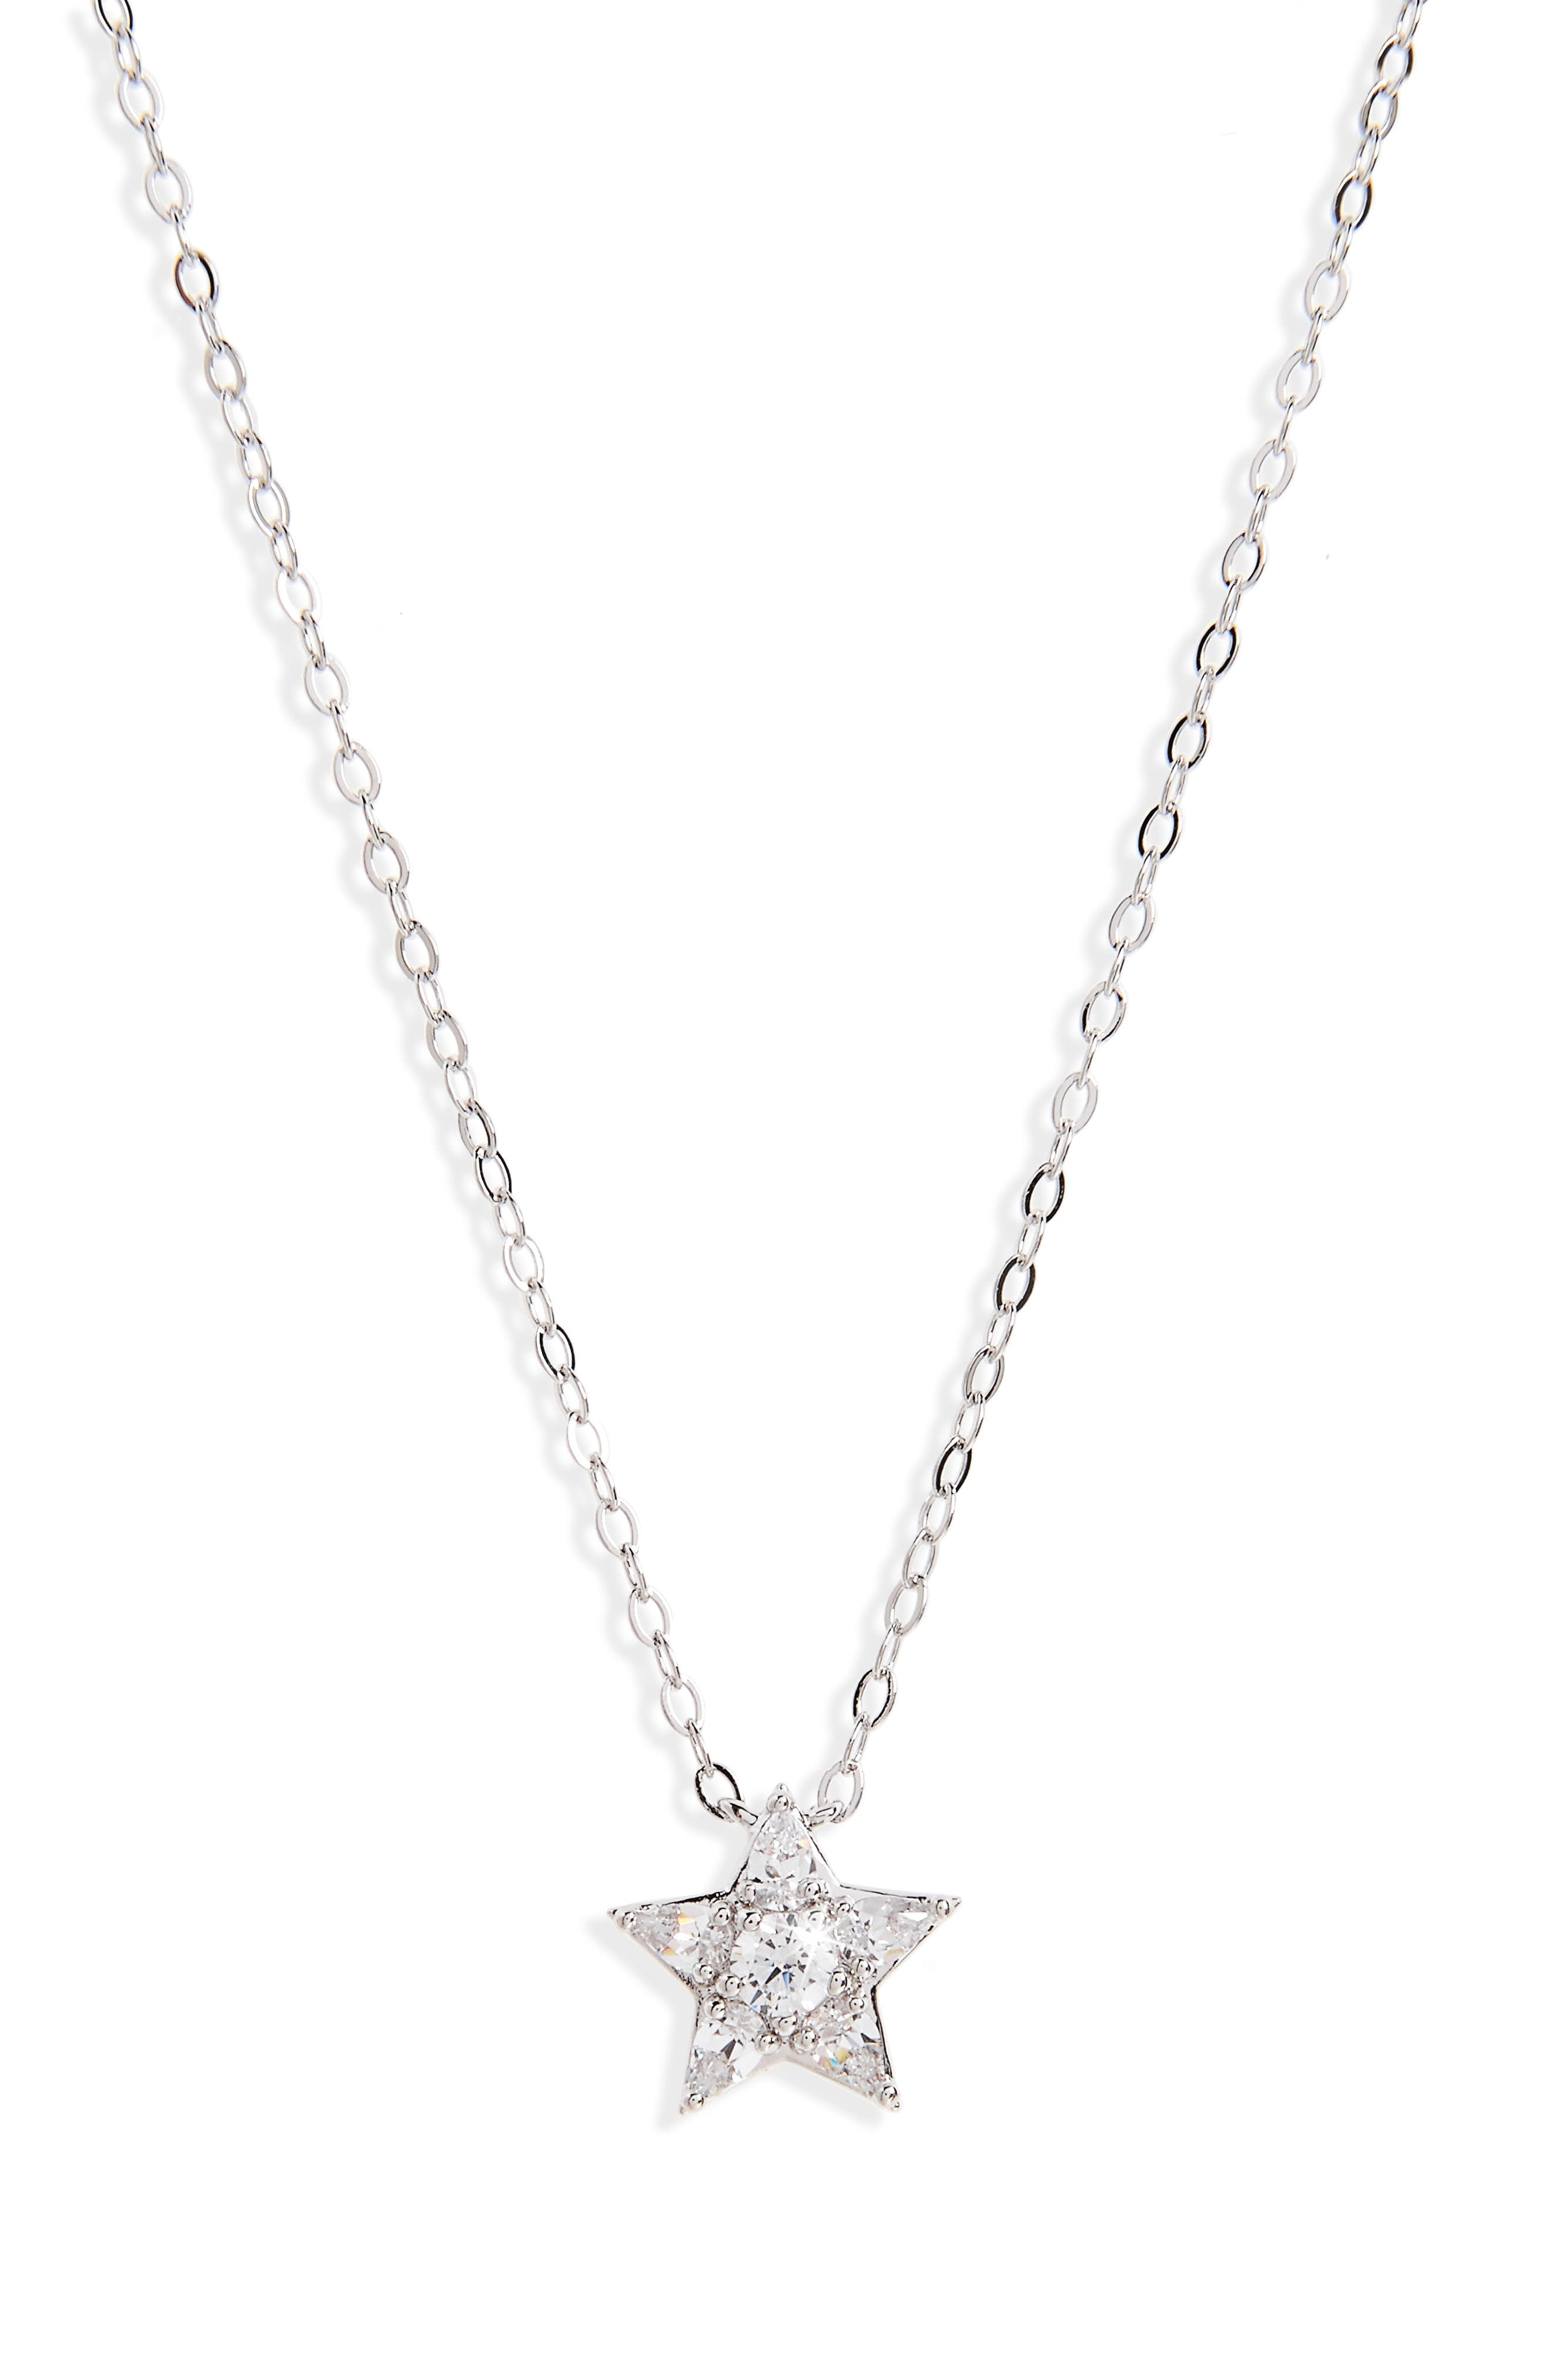 Reminisce Star Pendant Necklace,                             Main thumbnail 1, color,                             044